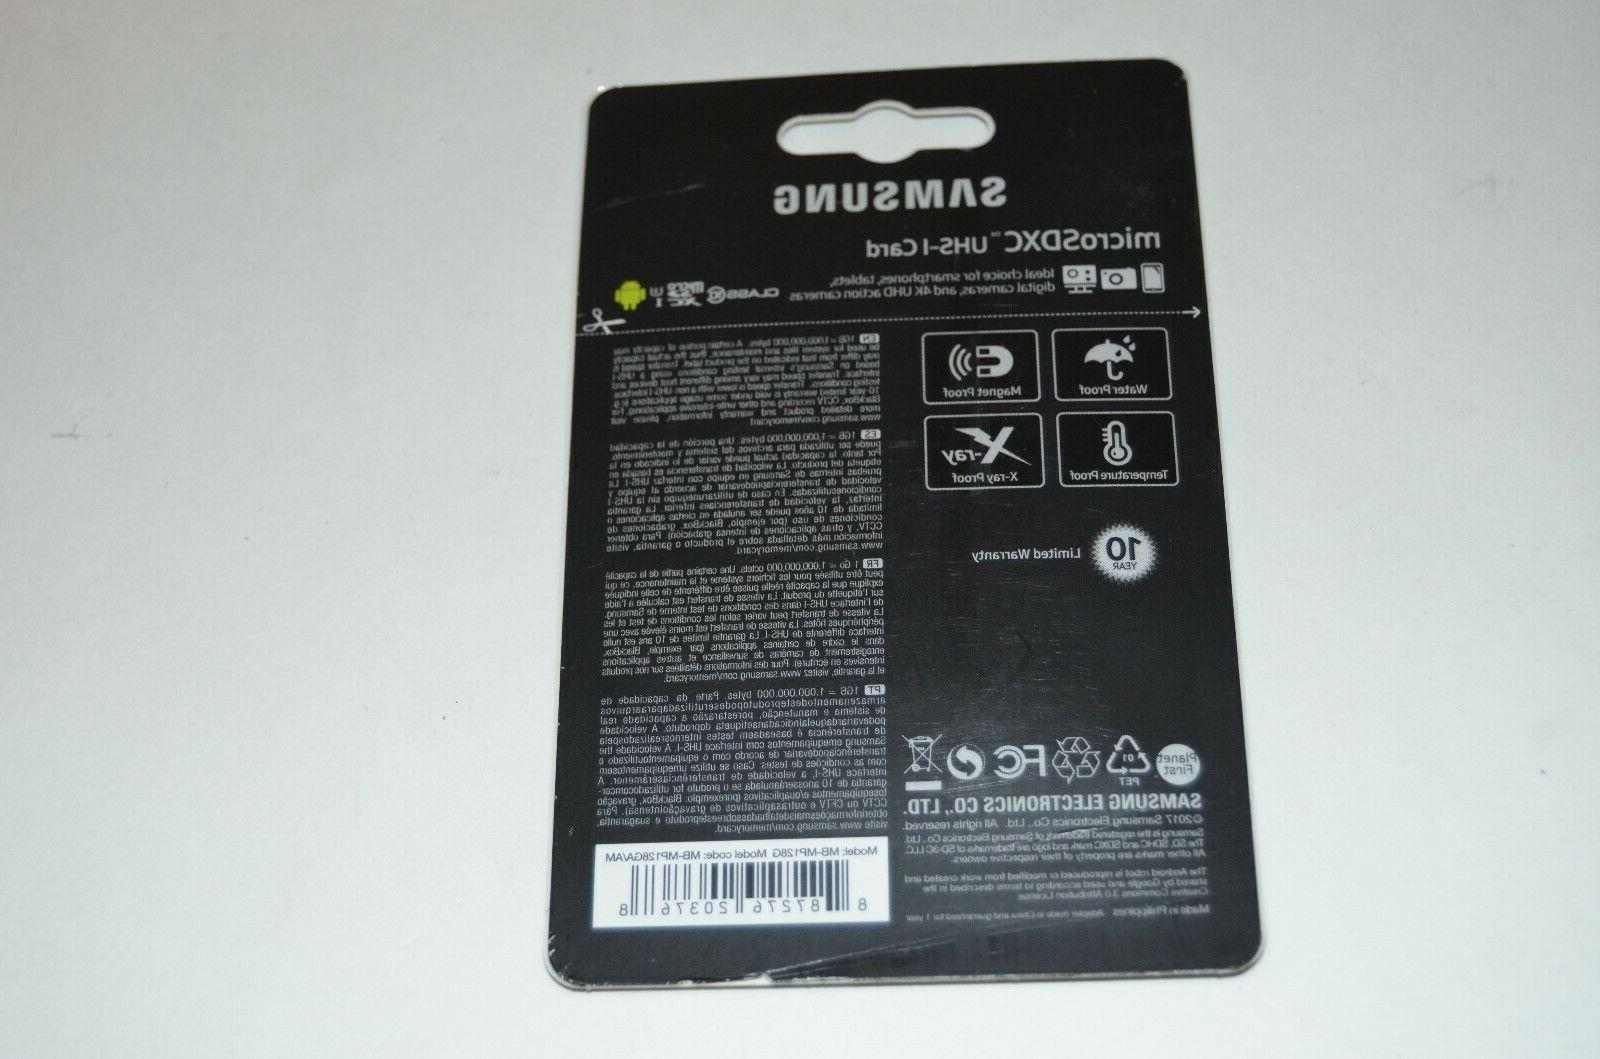 Memory Card with 128 GB